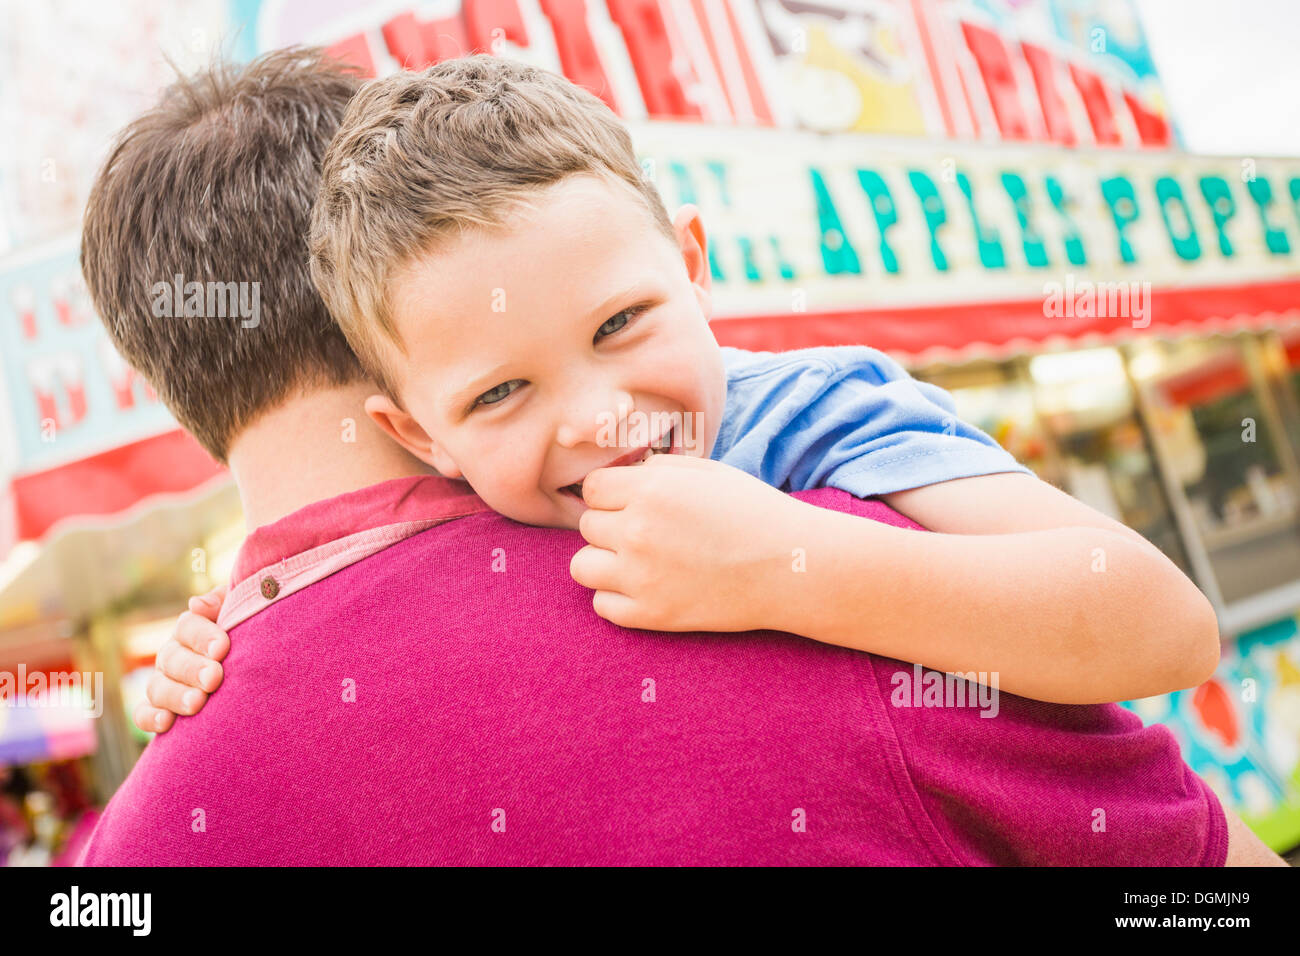 USA, Utah, Salt Lake City, Father and son (4-5) in amusement park - Stock Image